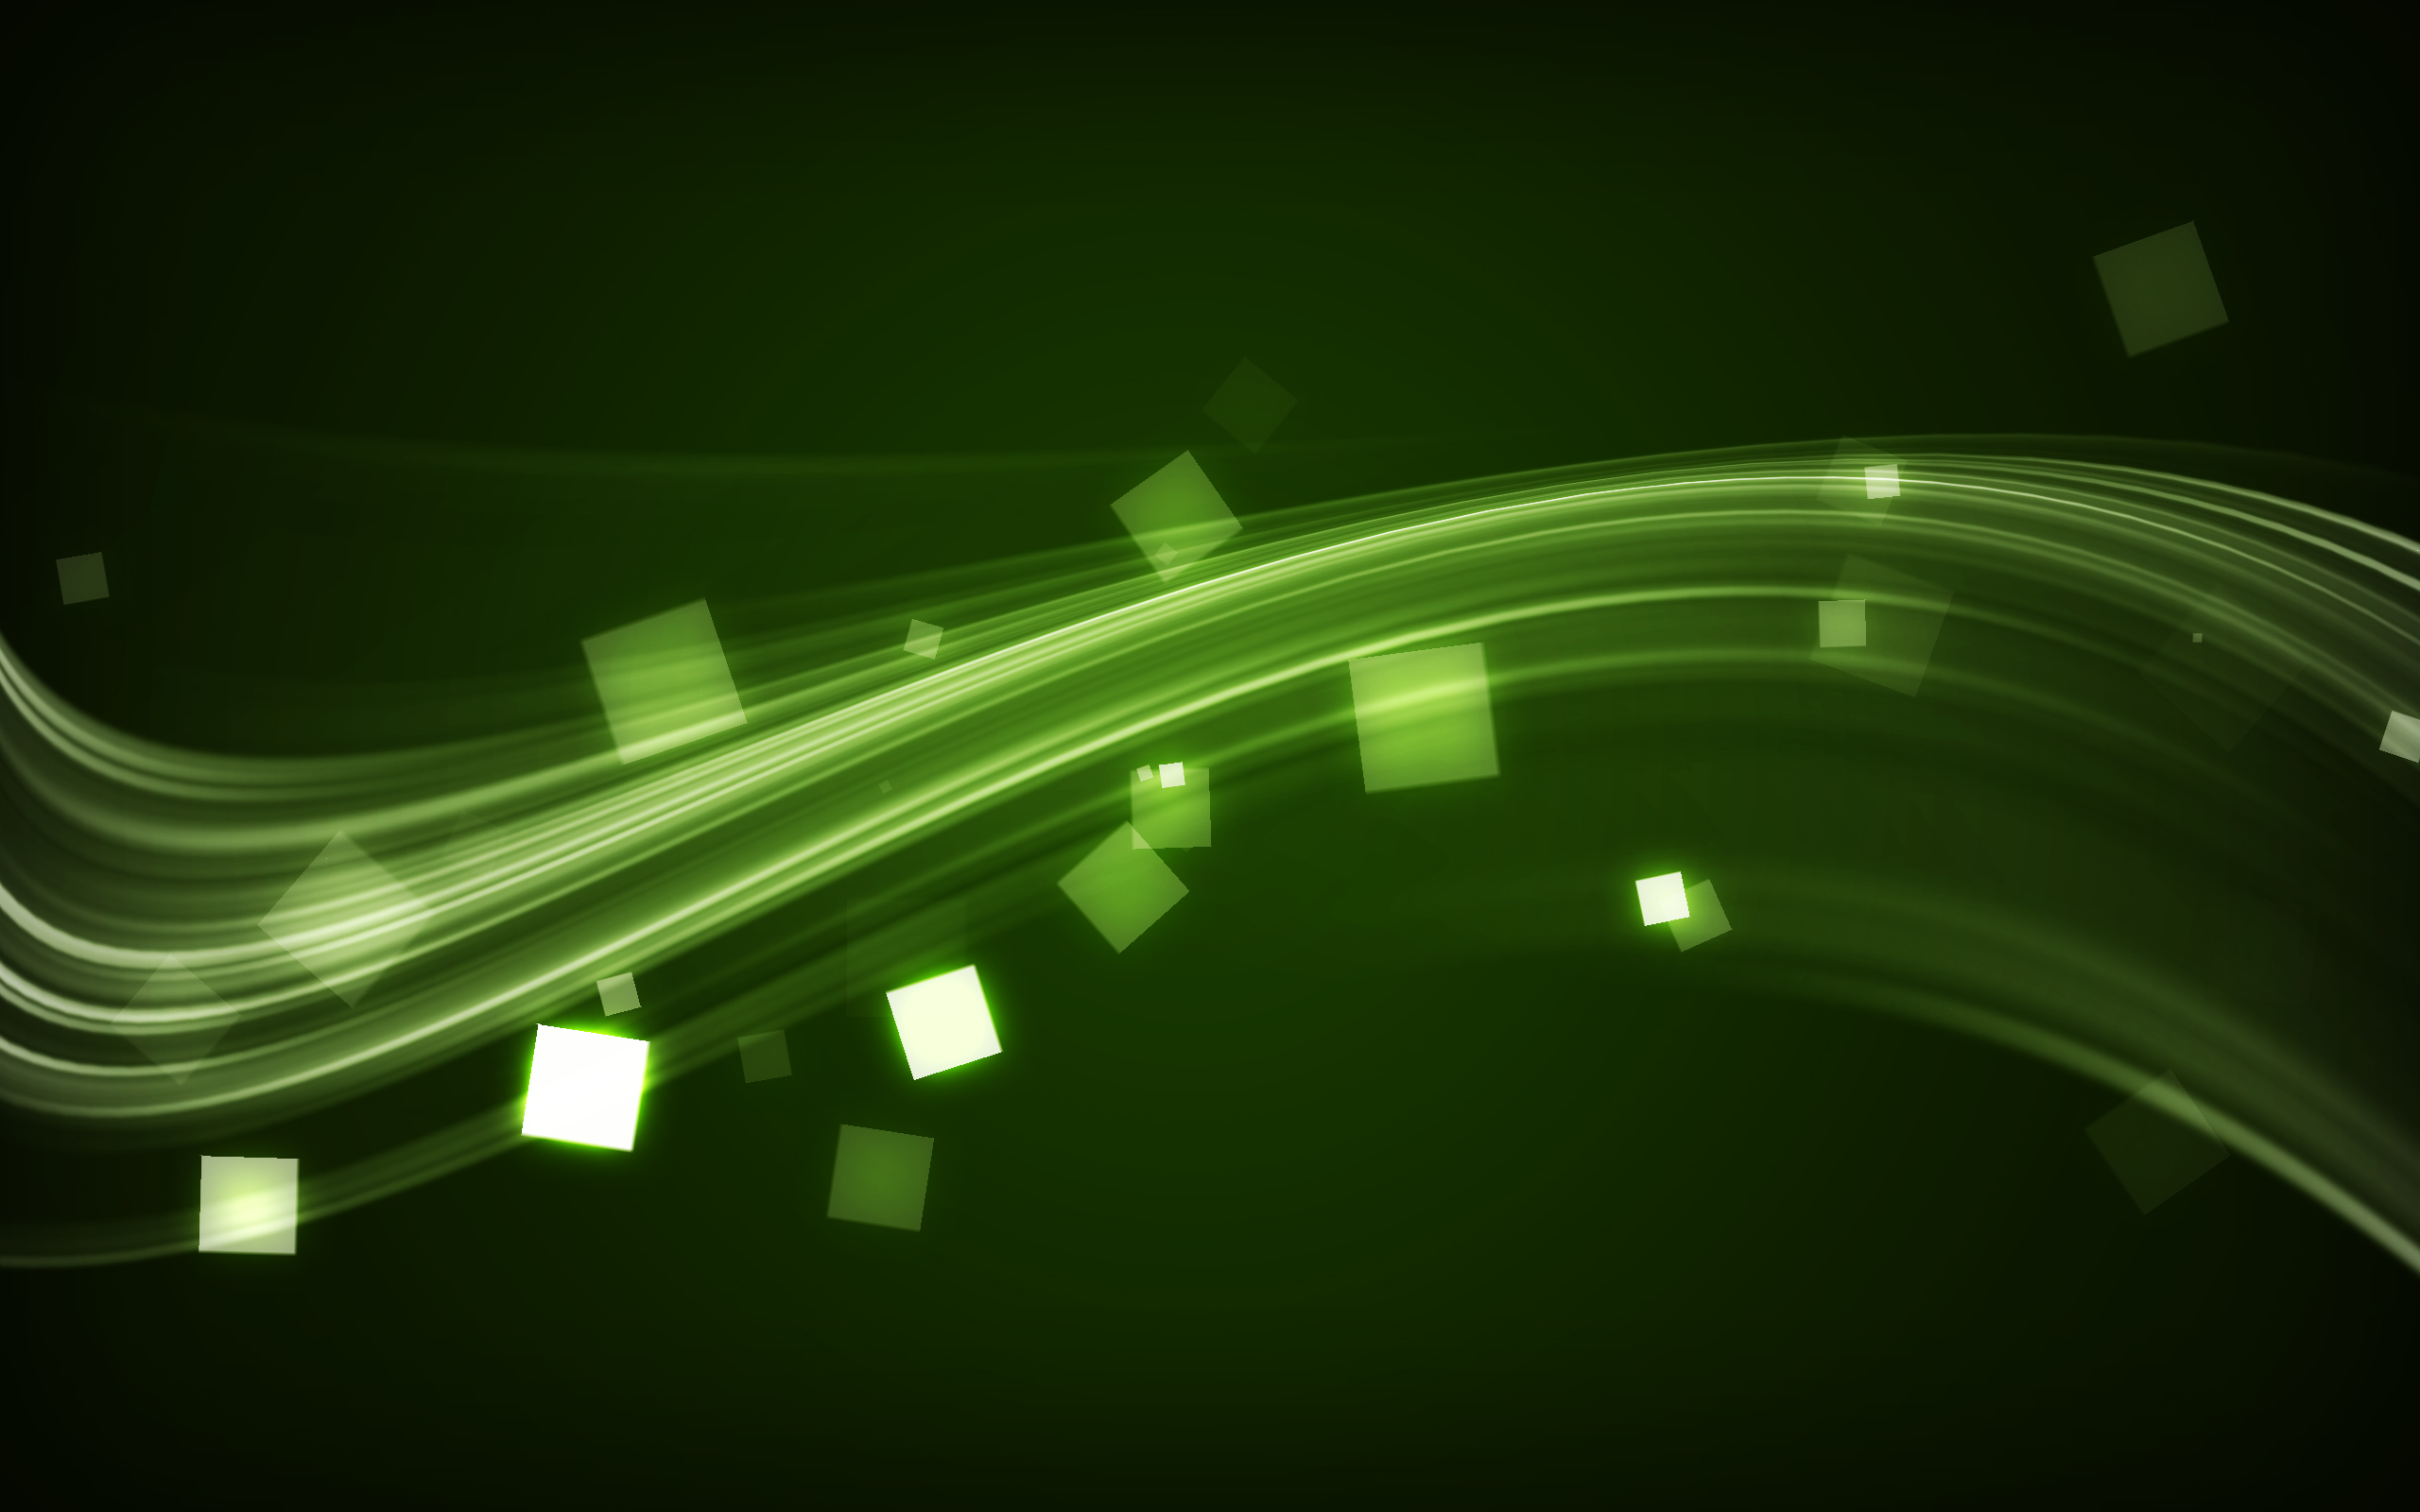 6797178-green-abstract-wallpaper